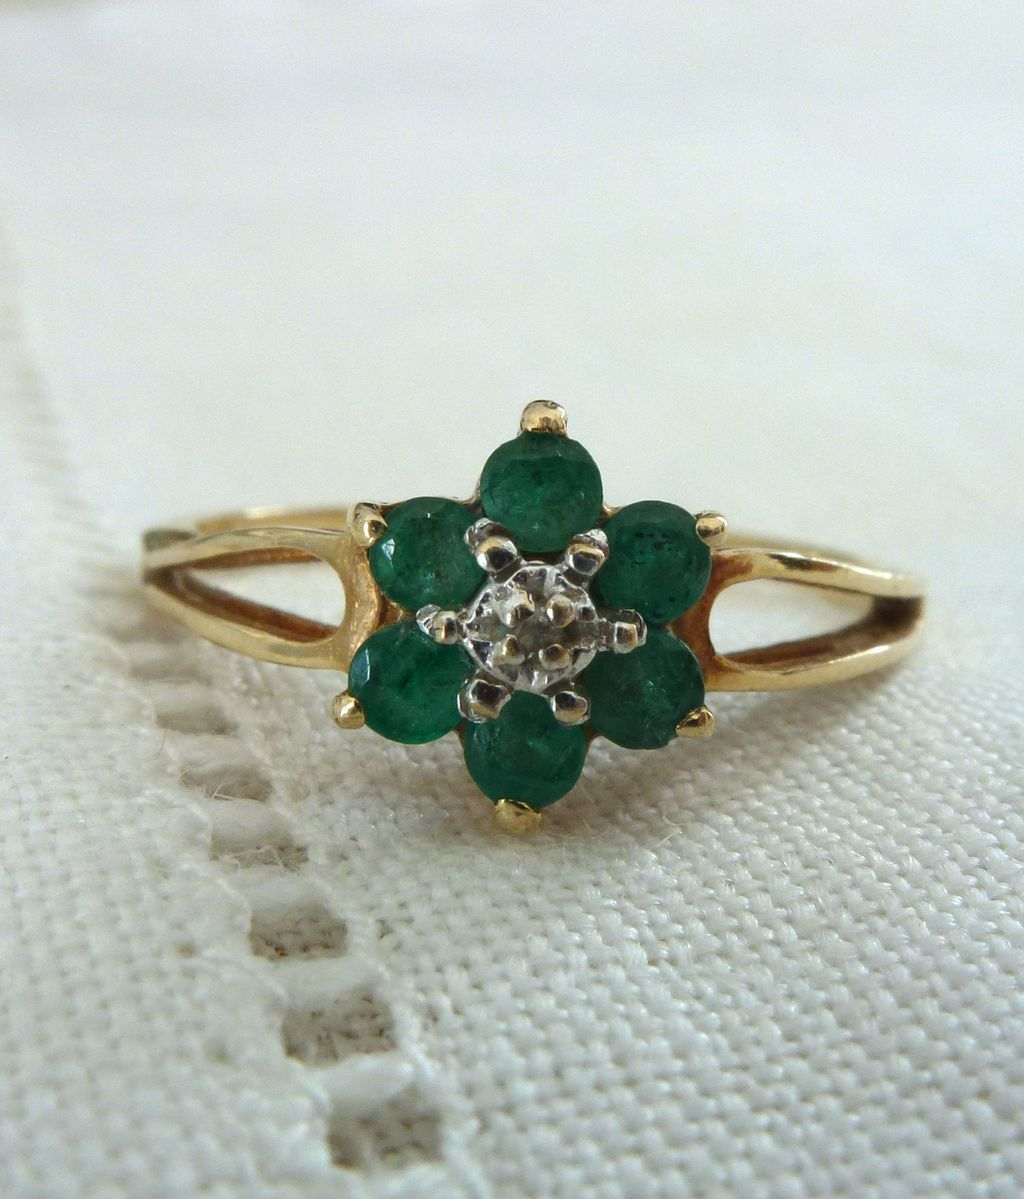 A Natural Emerald and Diamond Flower Ring in 14kt Yellow Gold - Clover from  romancevintagejewels on Ruby Lane